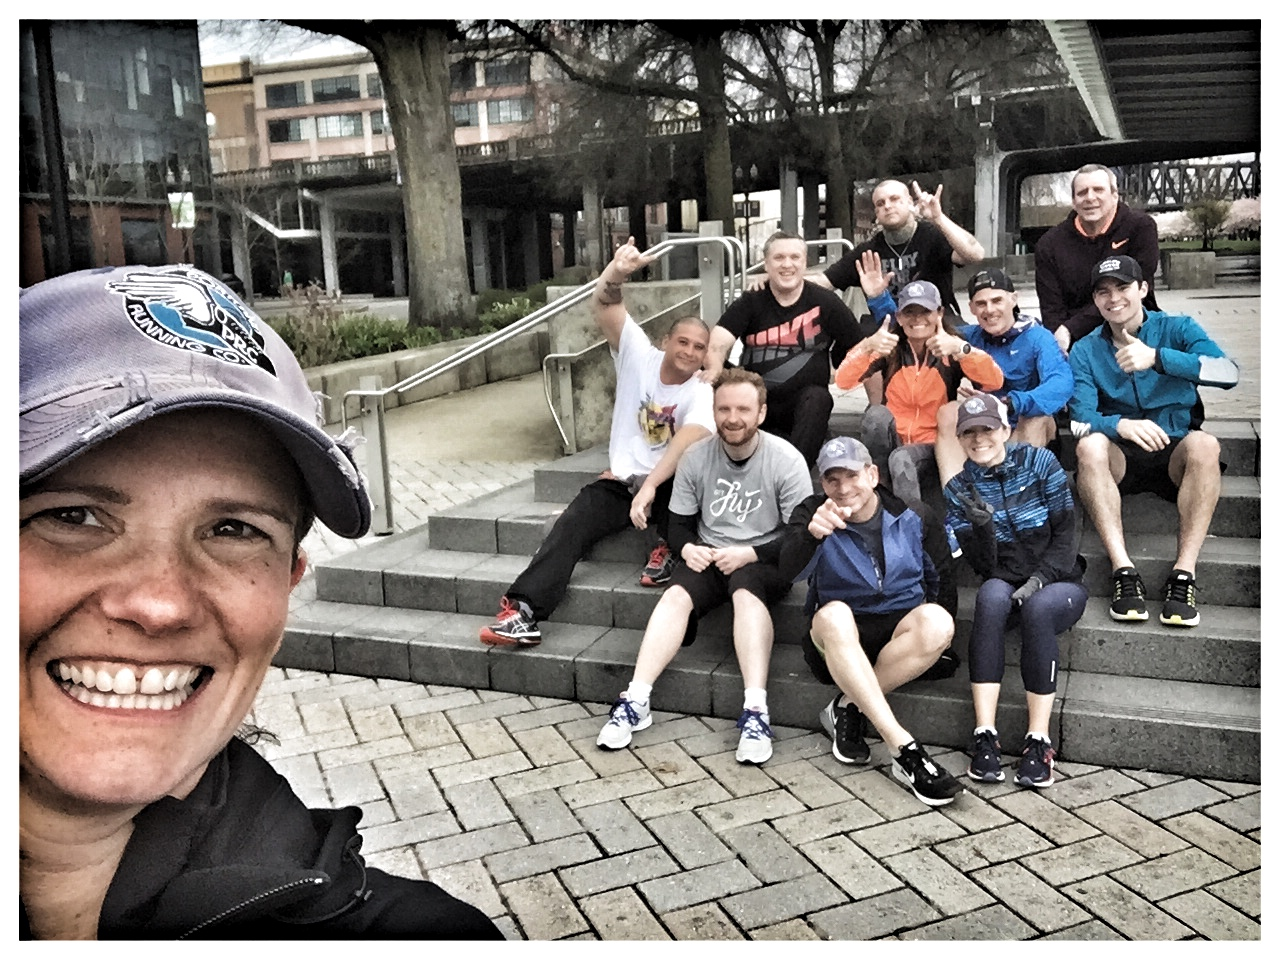 Selfie and group photo of the running/walking club.